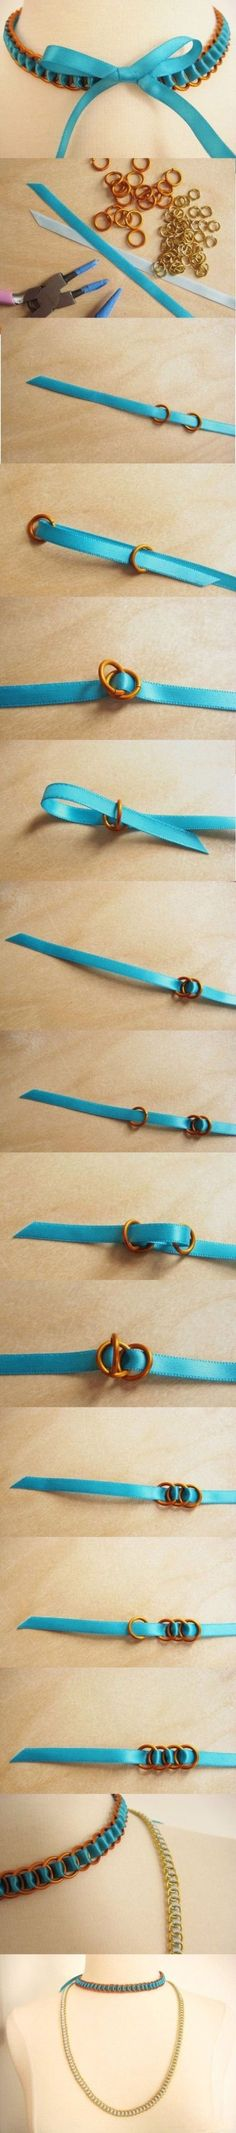 DIY Fashion Ribbon & Rings Necklace. See how easy! ;-D